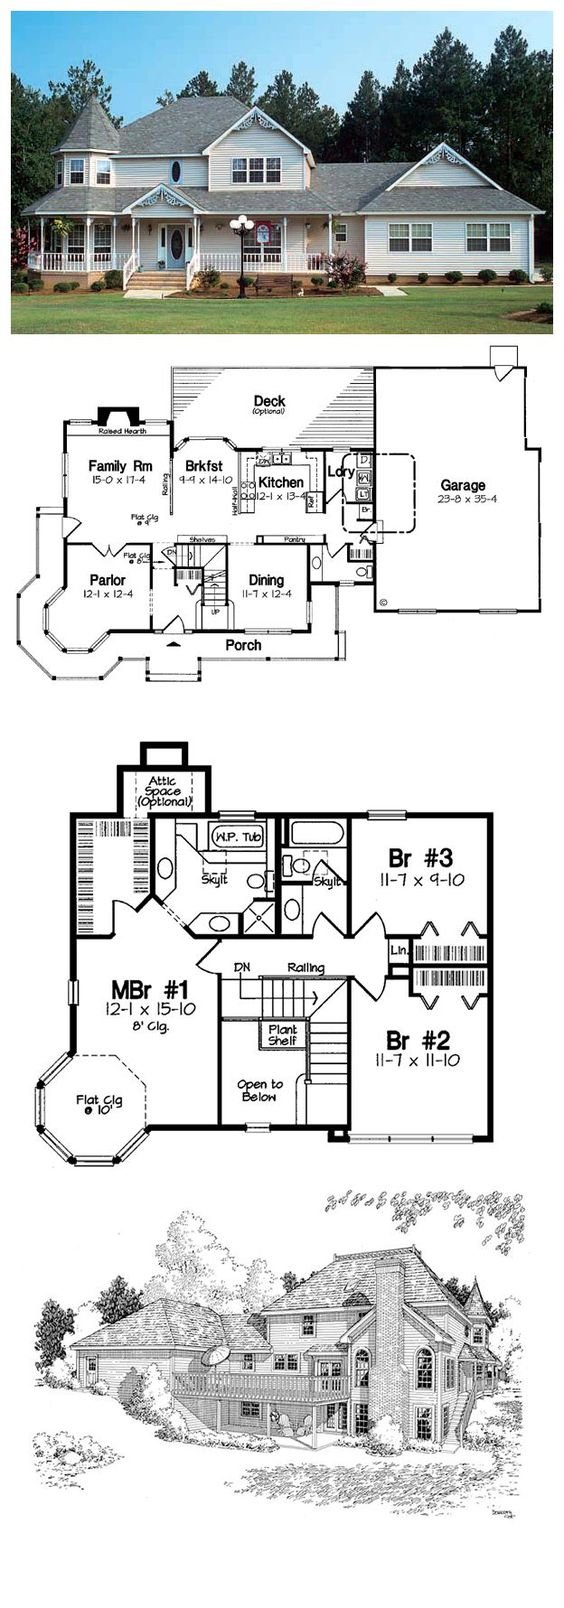 Country Living House Plans  House Plan 10690  Total Living Area: 2281 Sq  Ft